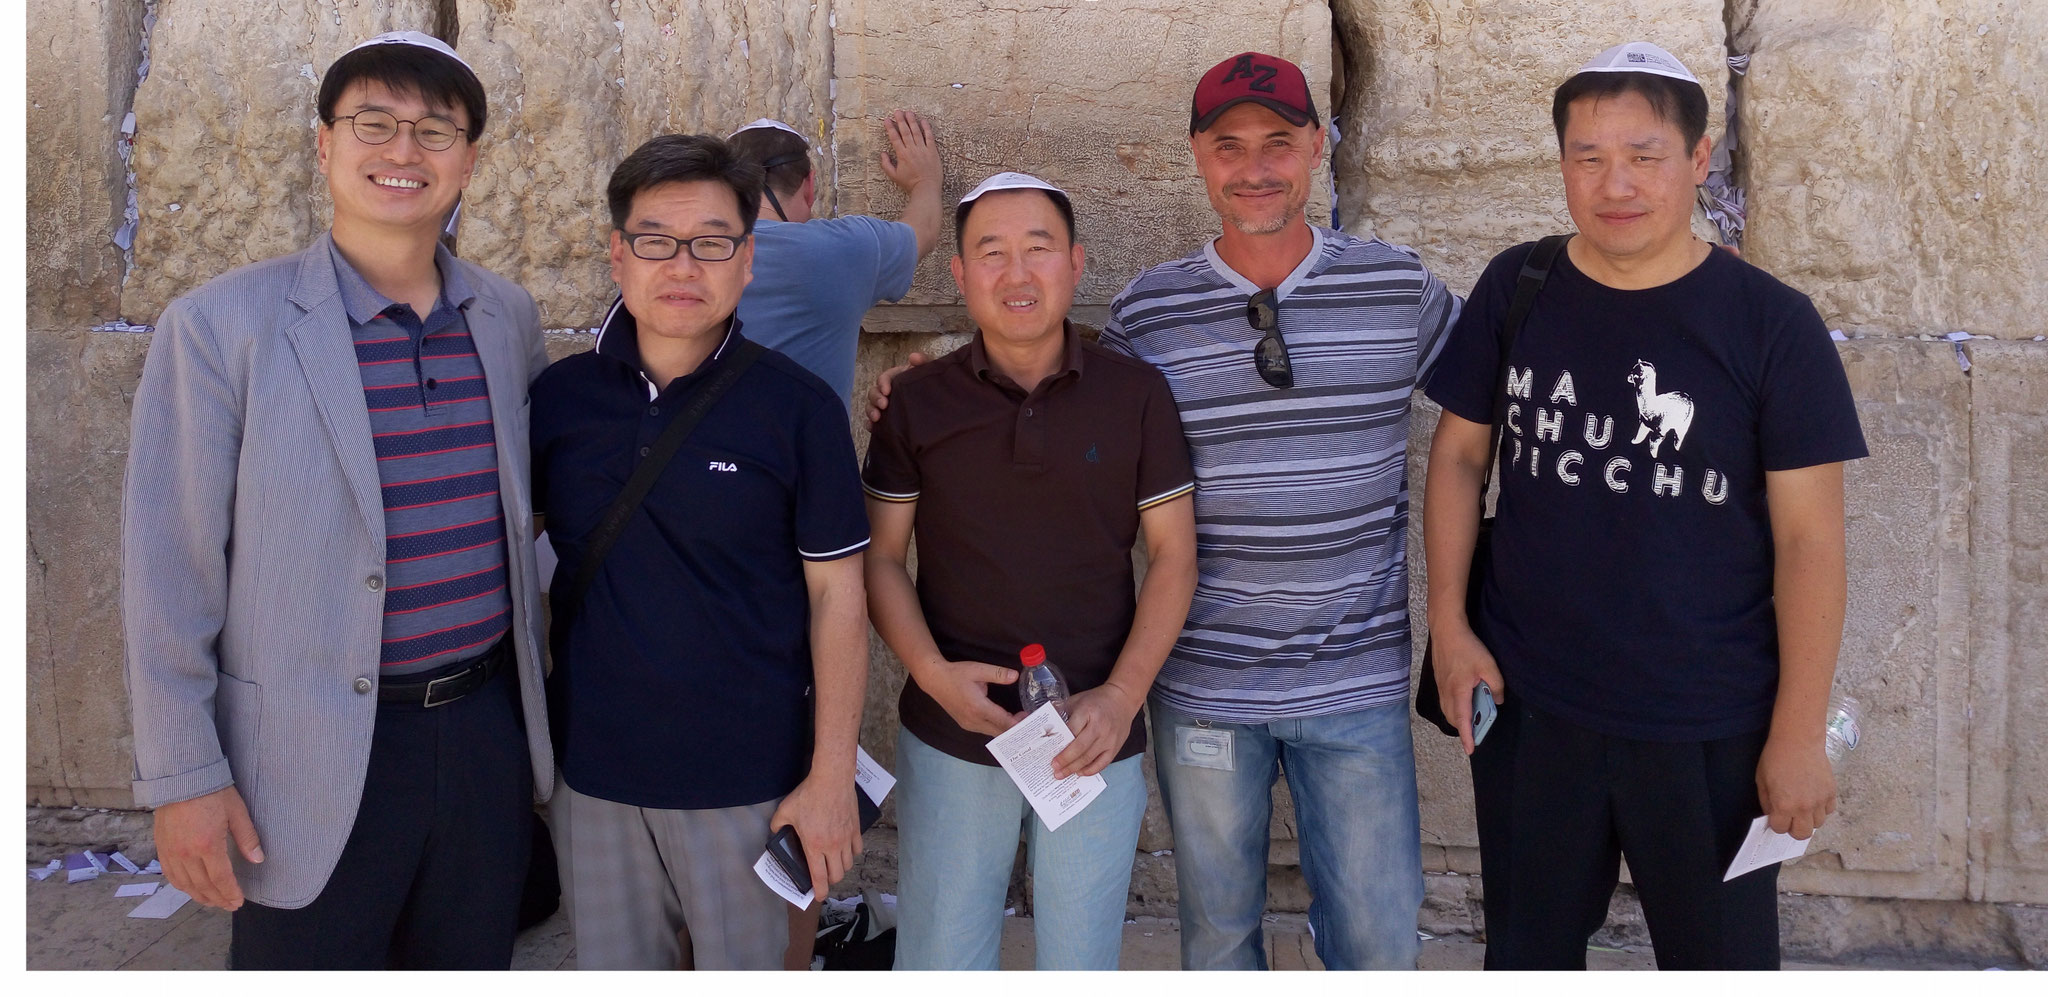 With South Korean tourists at the Western Wall